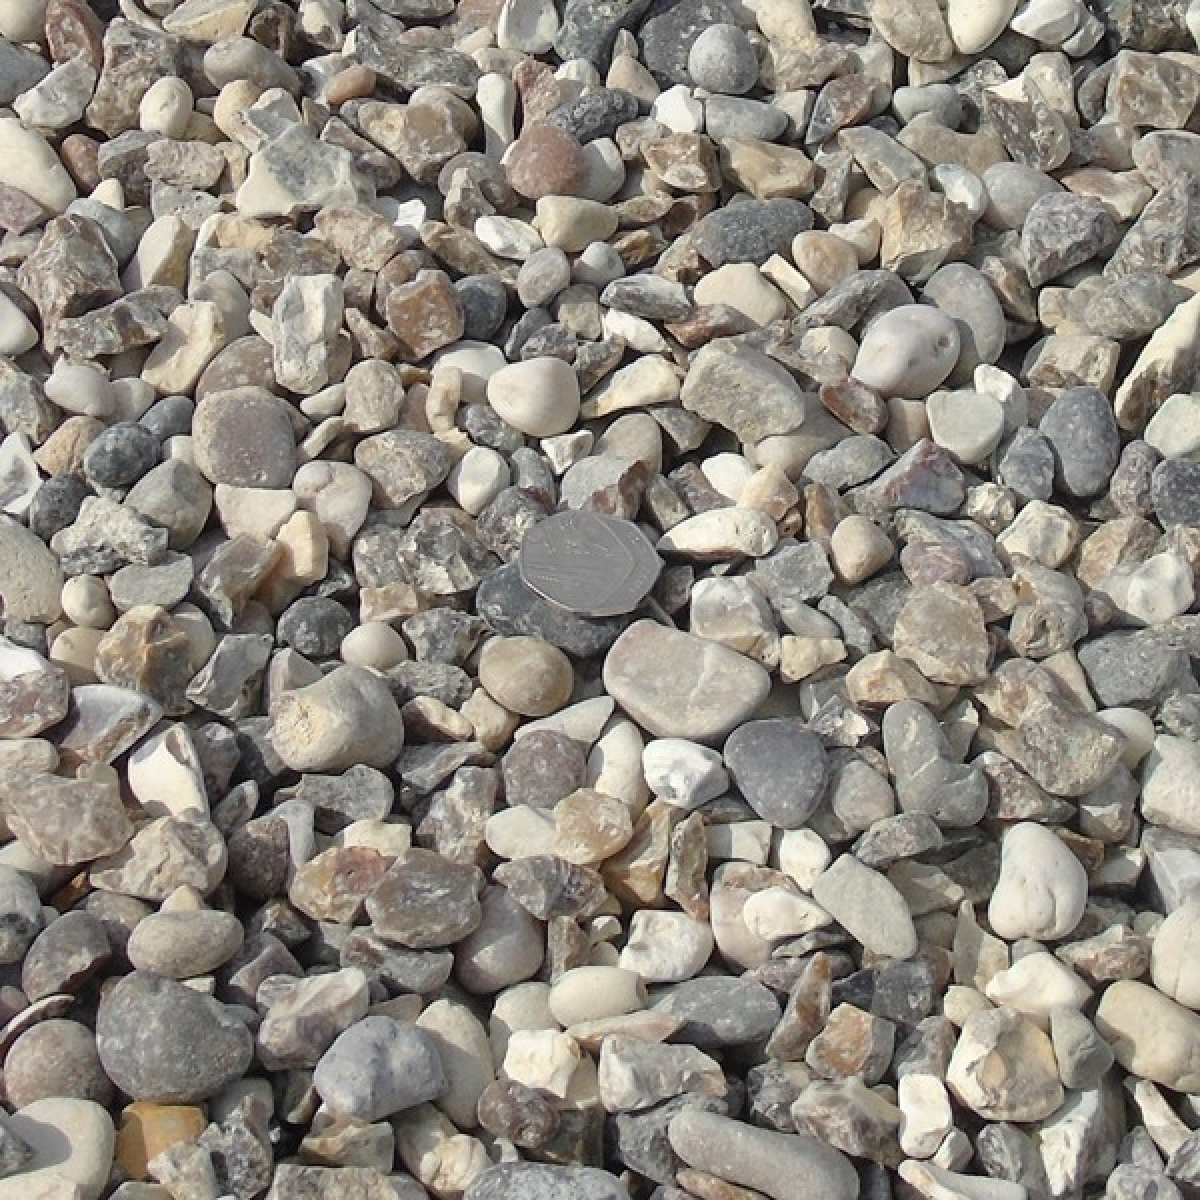 20mm quartz gravel dry Image by Websters Timber